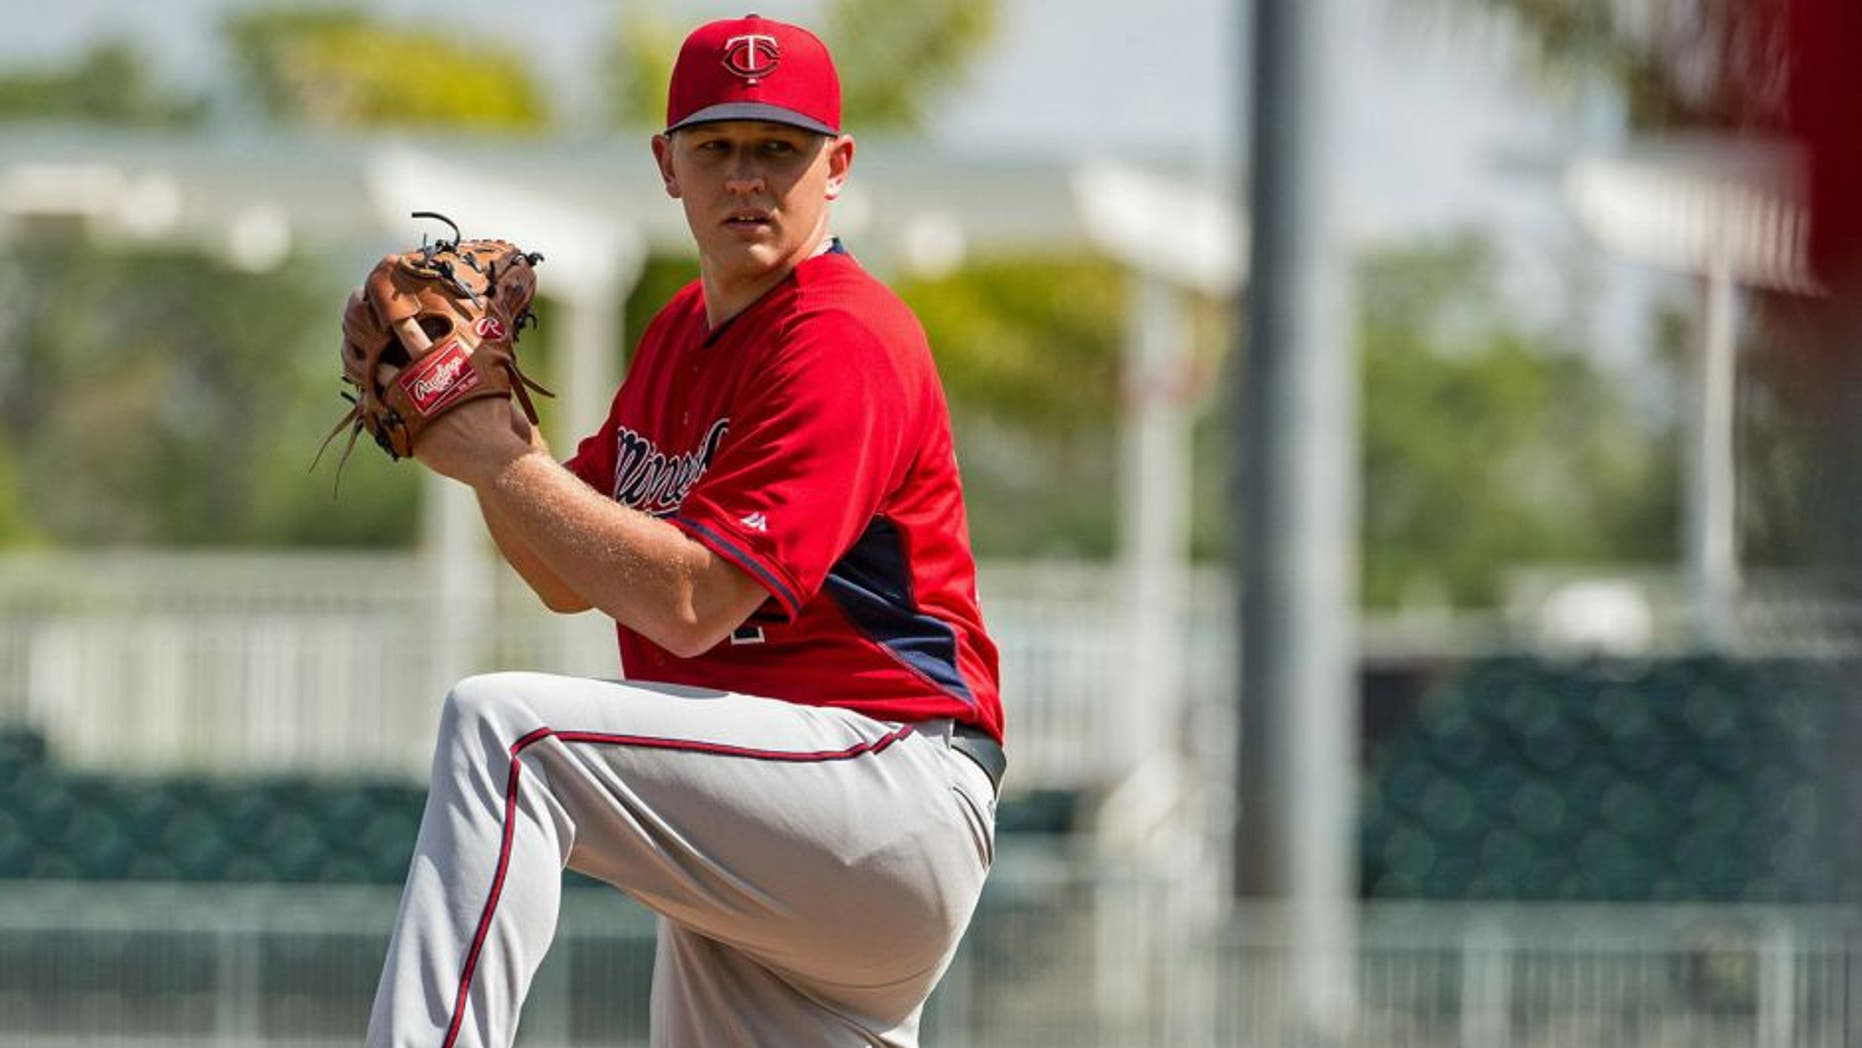 FORT MYERS, FL- MARCH 02: Tyler Duffey #71 of the Minnesota Twins pitches on March 2, 2015 at the CenturyLink Sports Complex in Fort Myers, Florida. (Photo by Brace Hemmelgarn/Minnesota Twins/Getty Images)